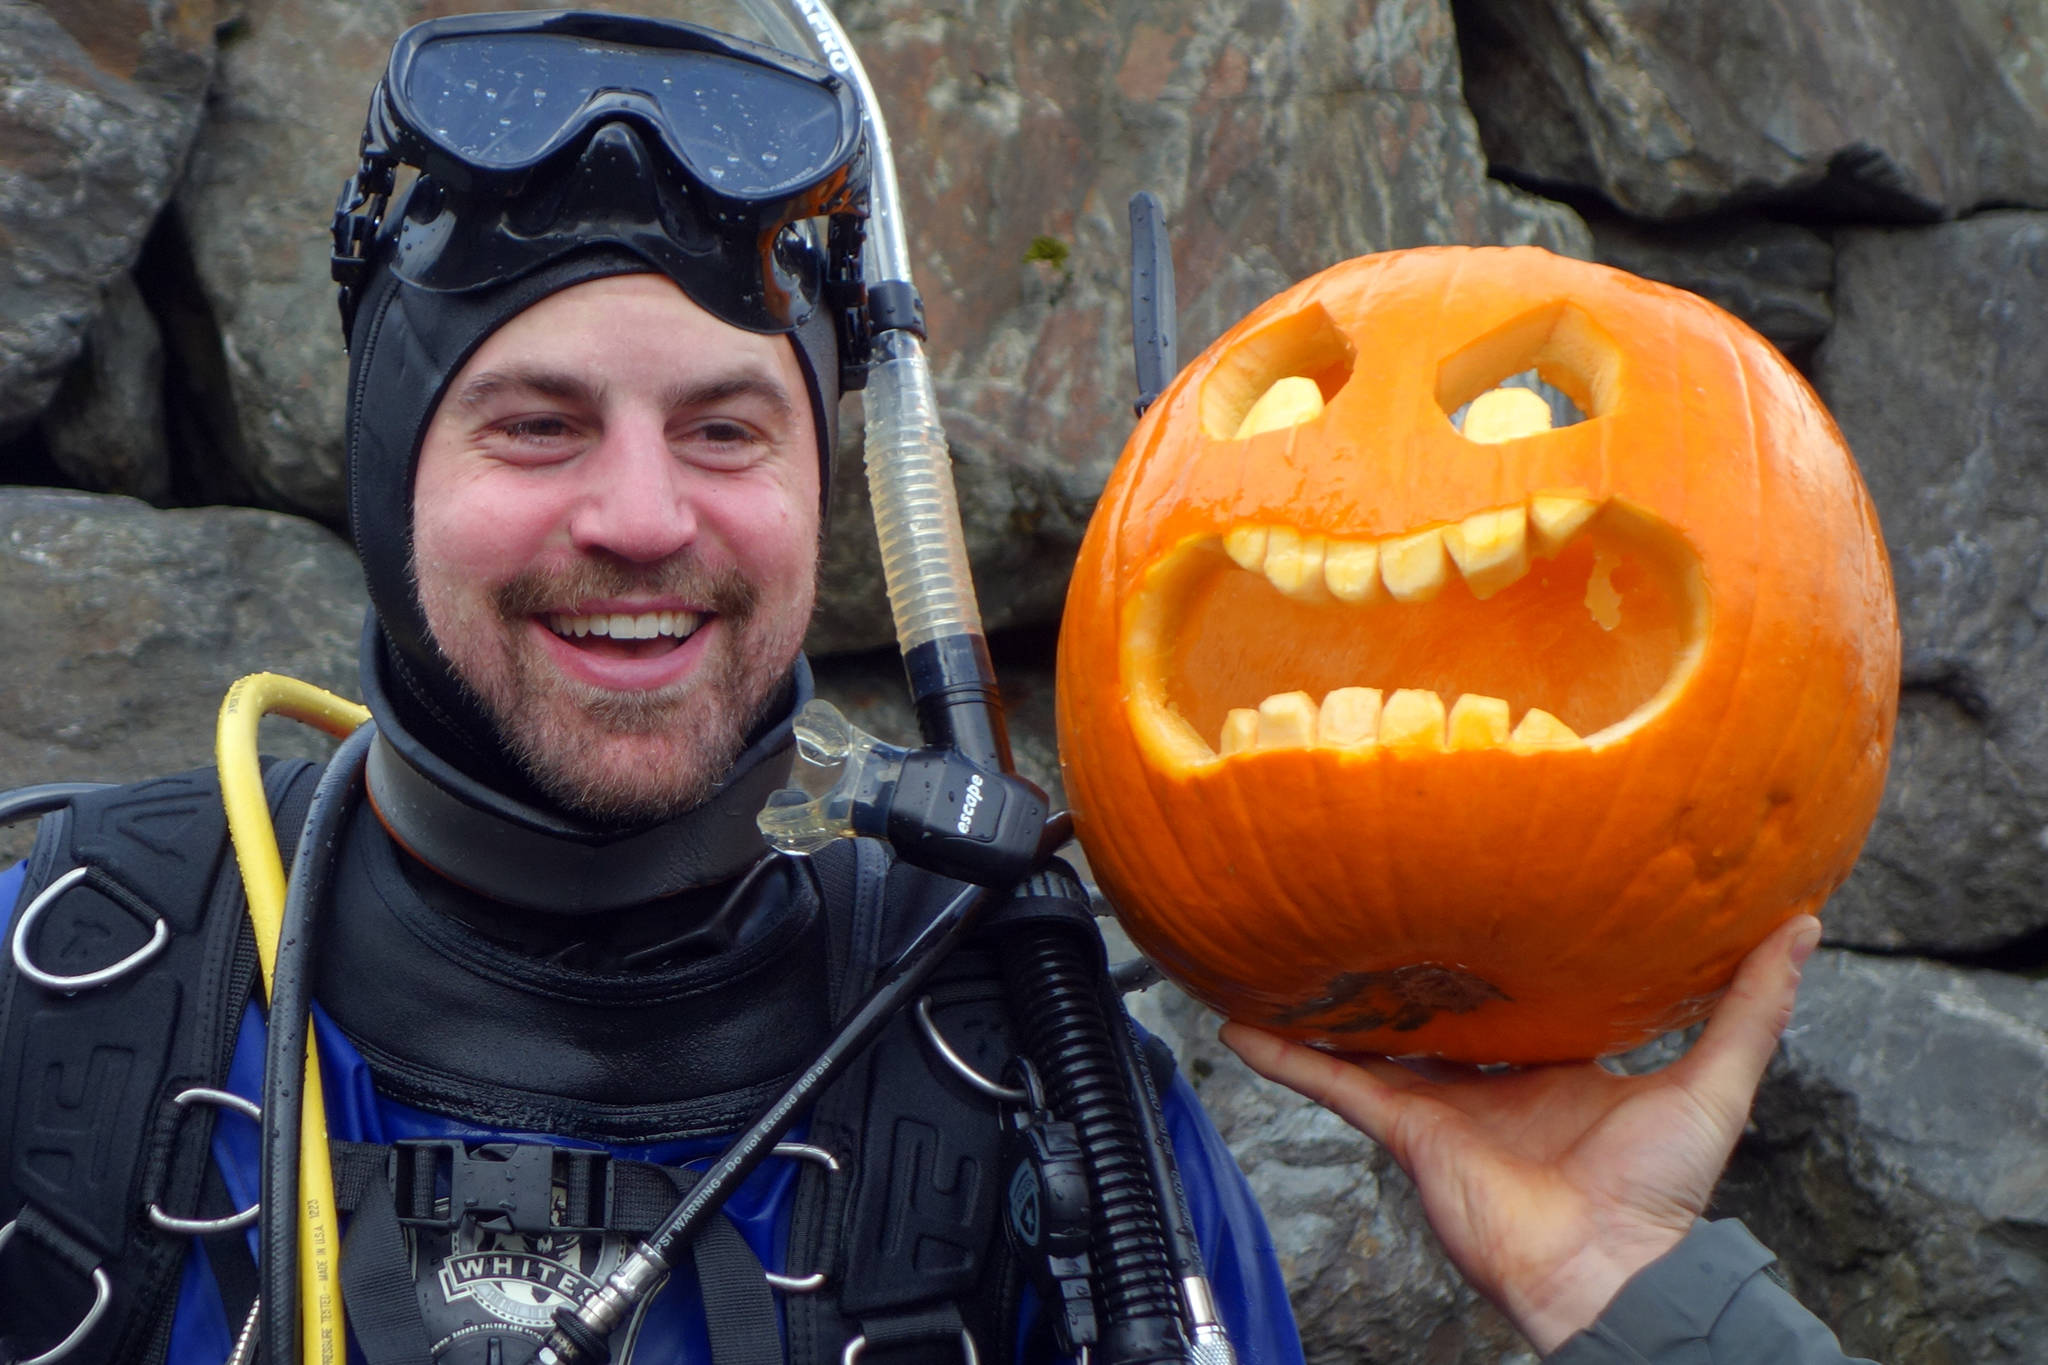 Darren Jaeckel smiles near a jack-o'-lantern he carved underwater at the Sixth Annual Spooktacular Dive and Underwater Pumpkin Carving event Saturday, Oct. 26, 2019. (Ben Hohenstatt | Juneau Empire)